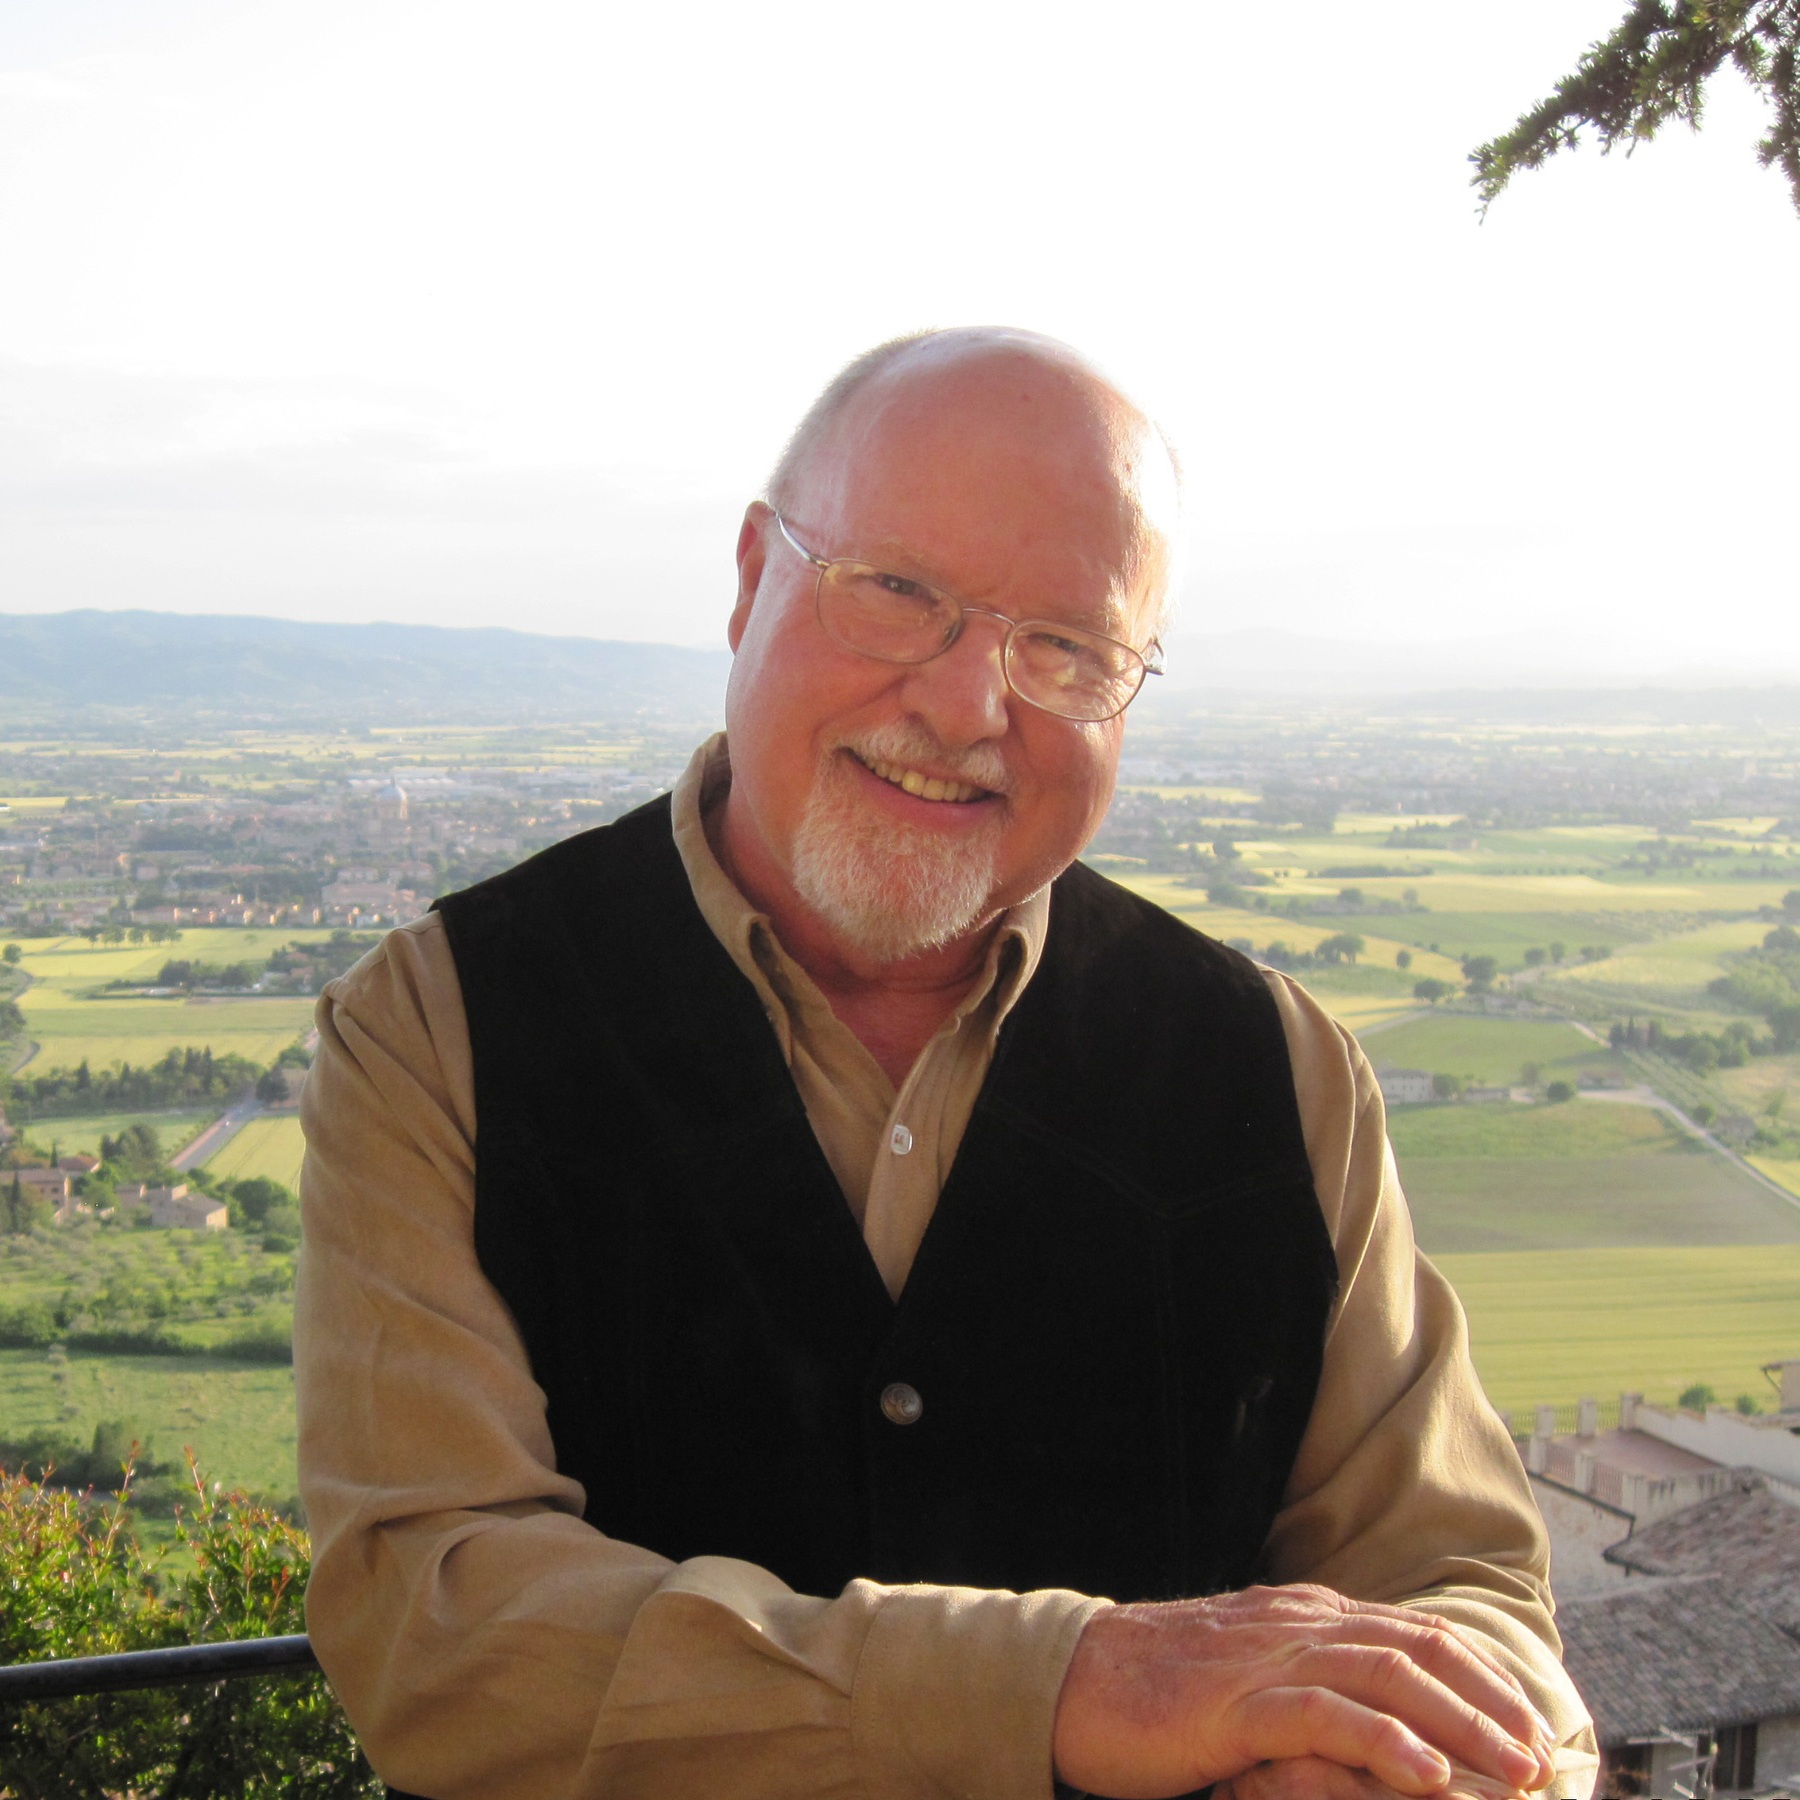 Rev. Richard Rohr - Richard Rohr is one of the world's best-known theologians and religious leaders. A Franciscan priest, his many books include the recent best-sellers The Universal Christ and The Divine Dance. He is the founder of the Center for Action and Contemplation.